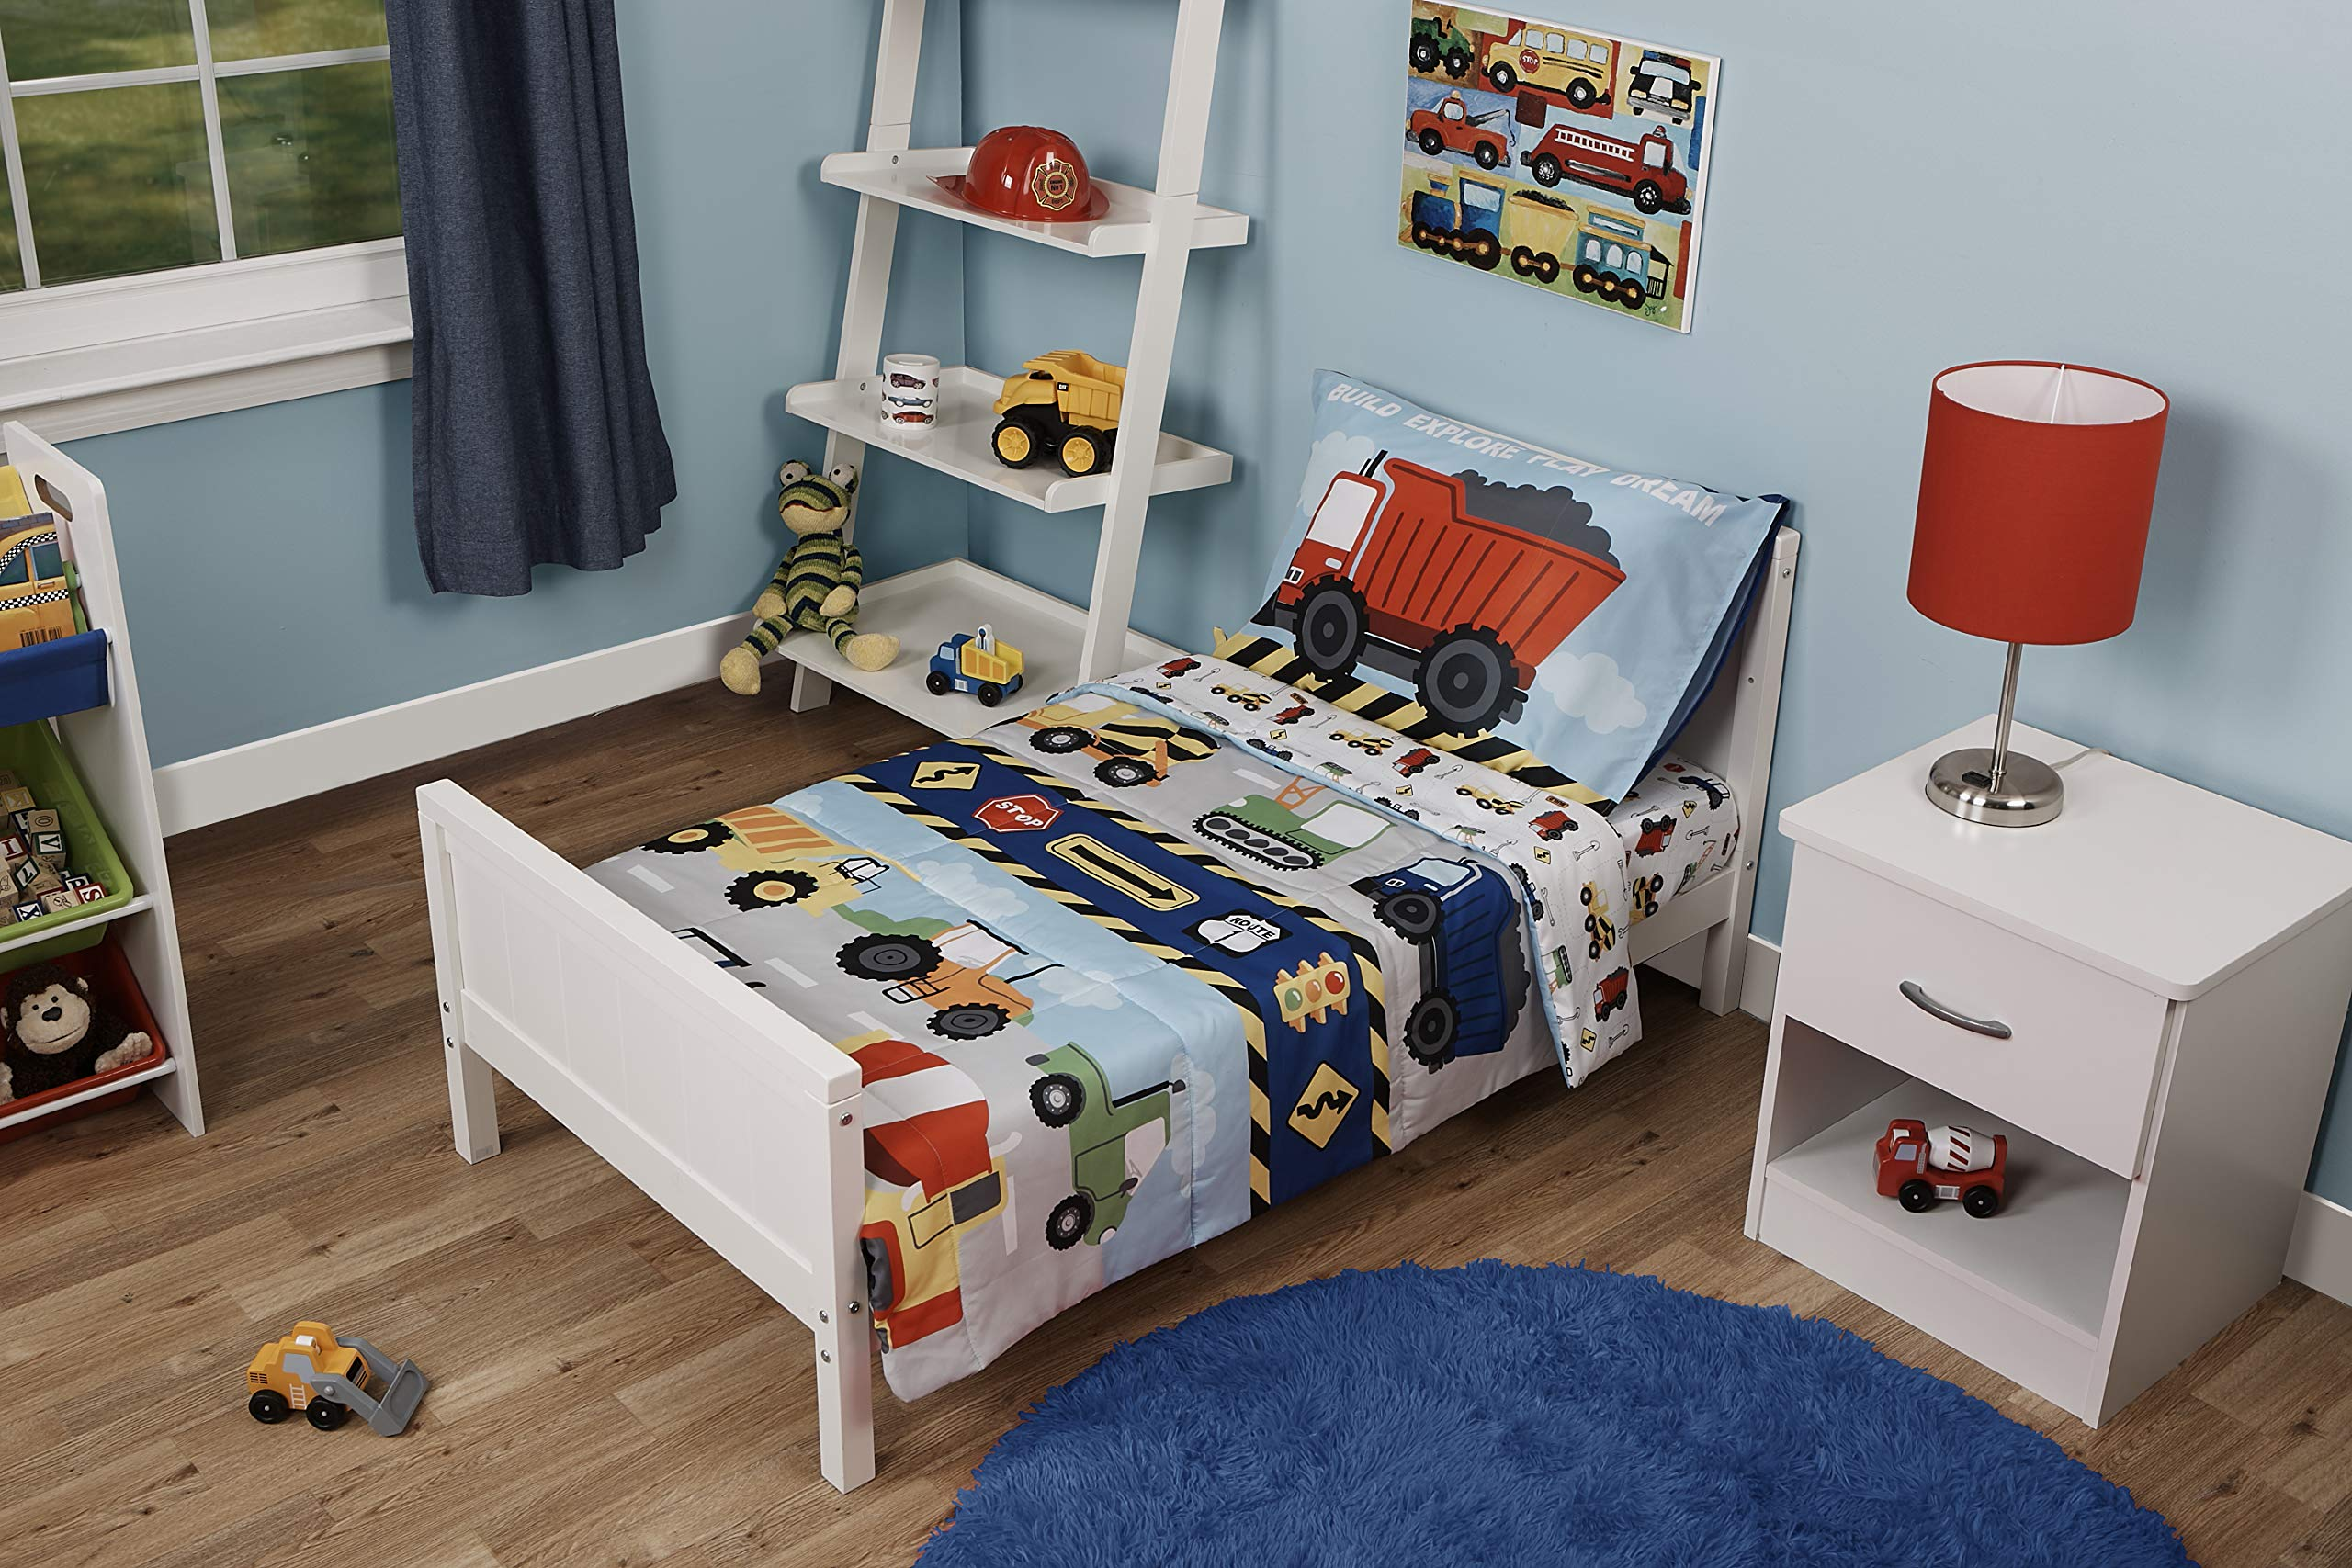 Funhouse 4 Piece Toddler Bedding Set - Includes Quilted Comforter, Fitted Sheet, Top Sheet, and Pillow Case - Construction Car and Truck Design for Boys Bed by Baby Boom